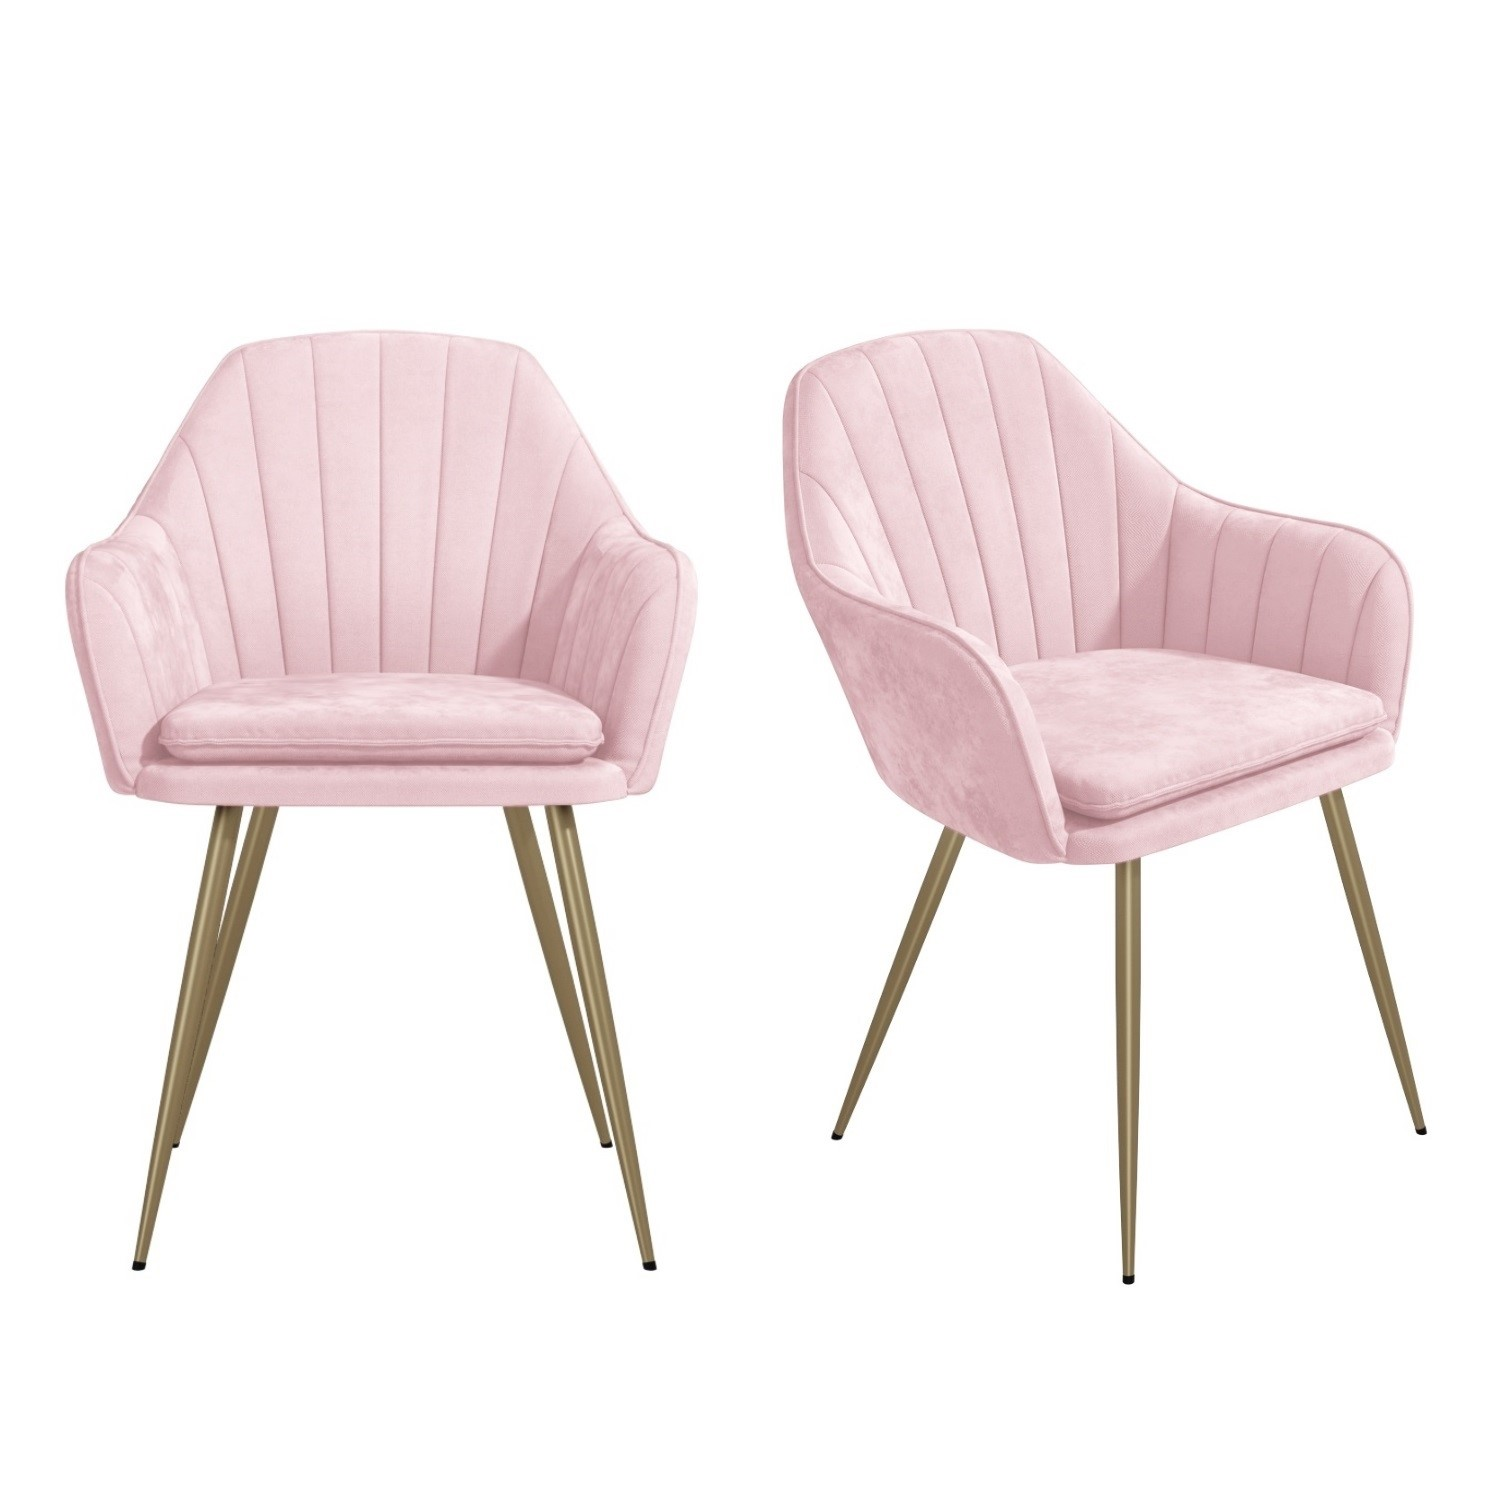 Set of 3 Pink Velvet Dining Tub Chairs with Gold Legs - Logan